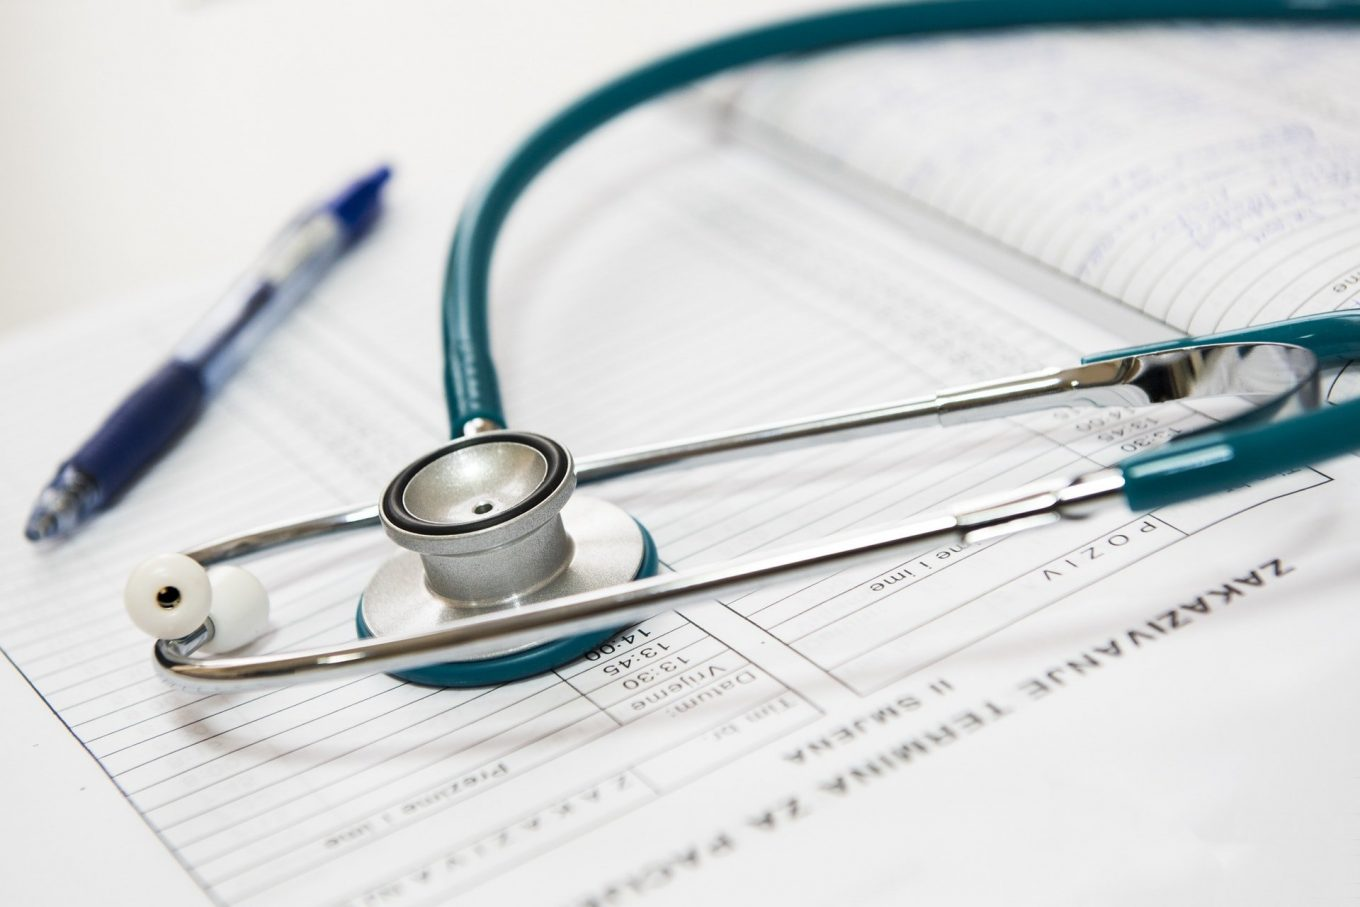 Clinical Negligence in the NHS: How to Take Legal Action